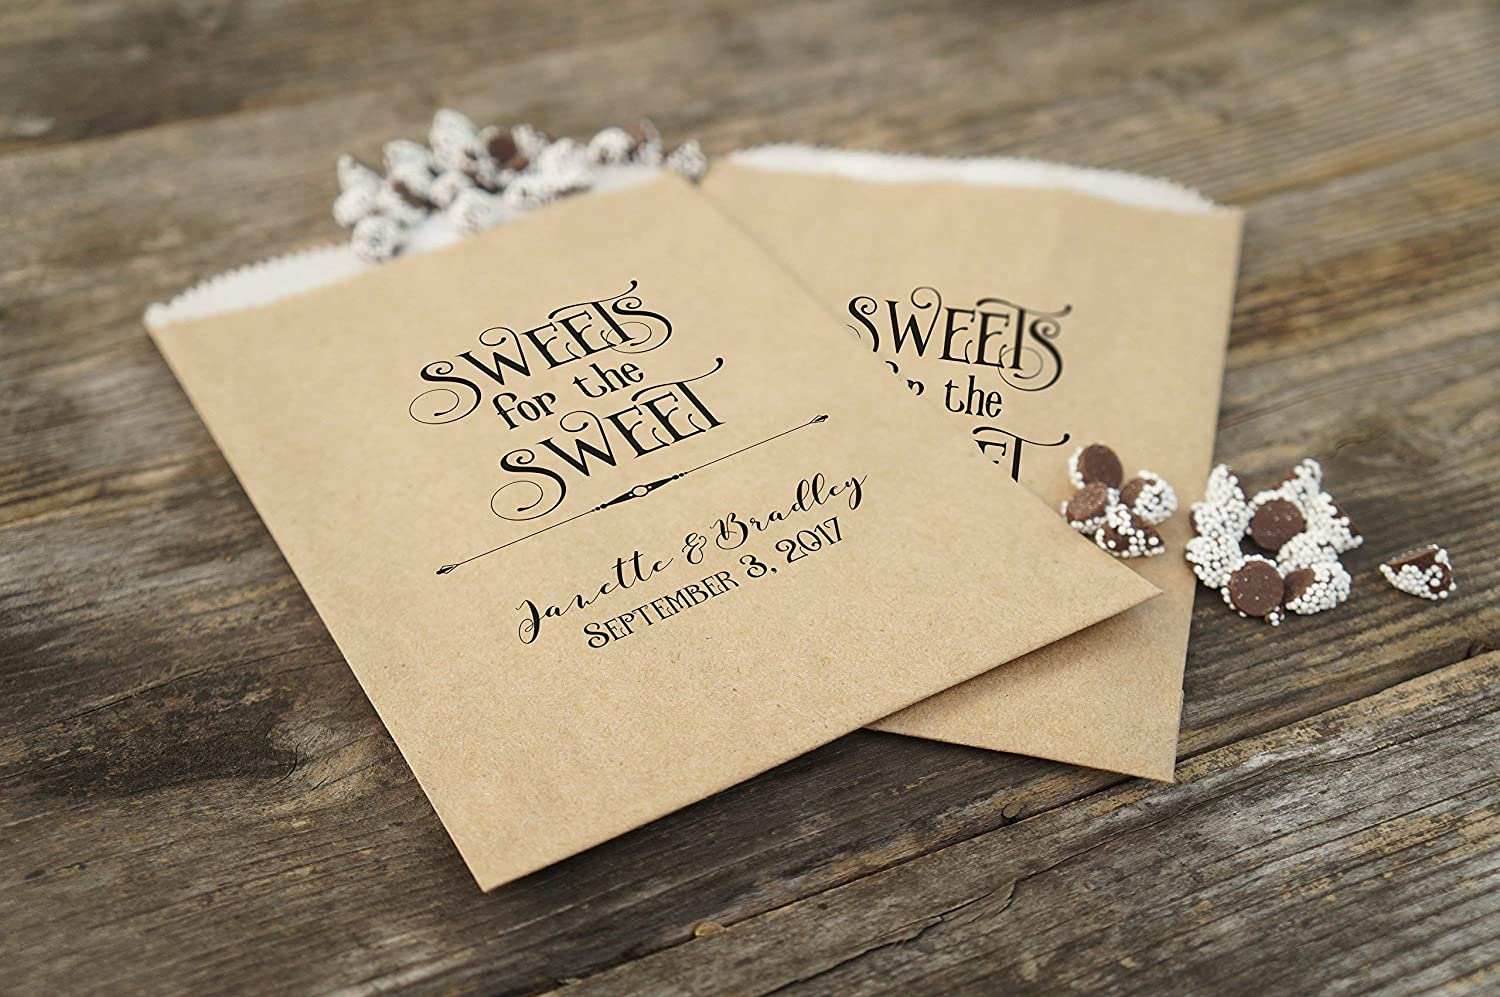 Cookie Favor Bags Rustic Wedding Sacks Kraft Paper Candy Bags Set of 25 Barn Wedding Sweets Table Grease Resistant Lined